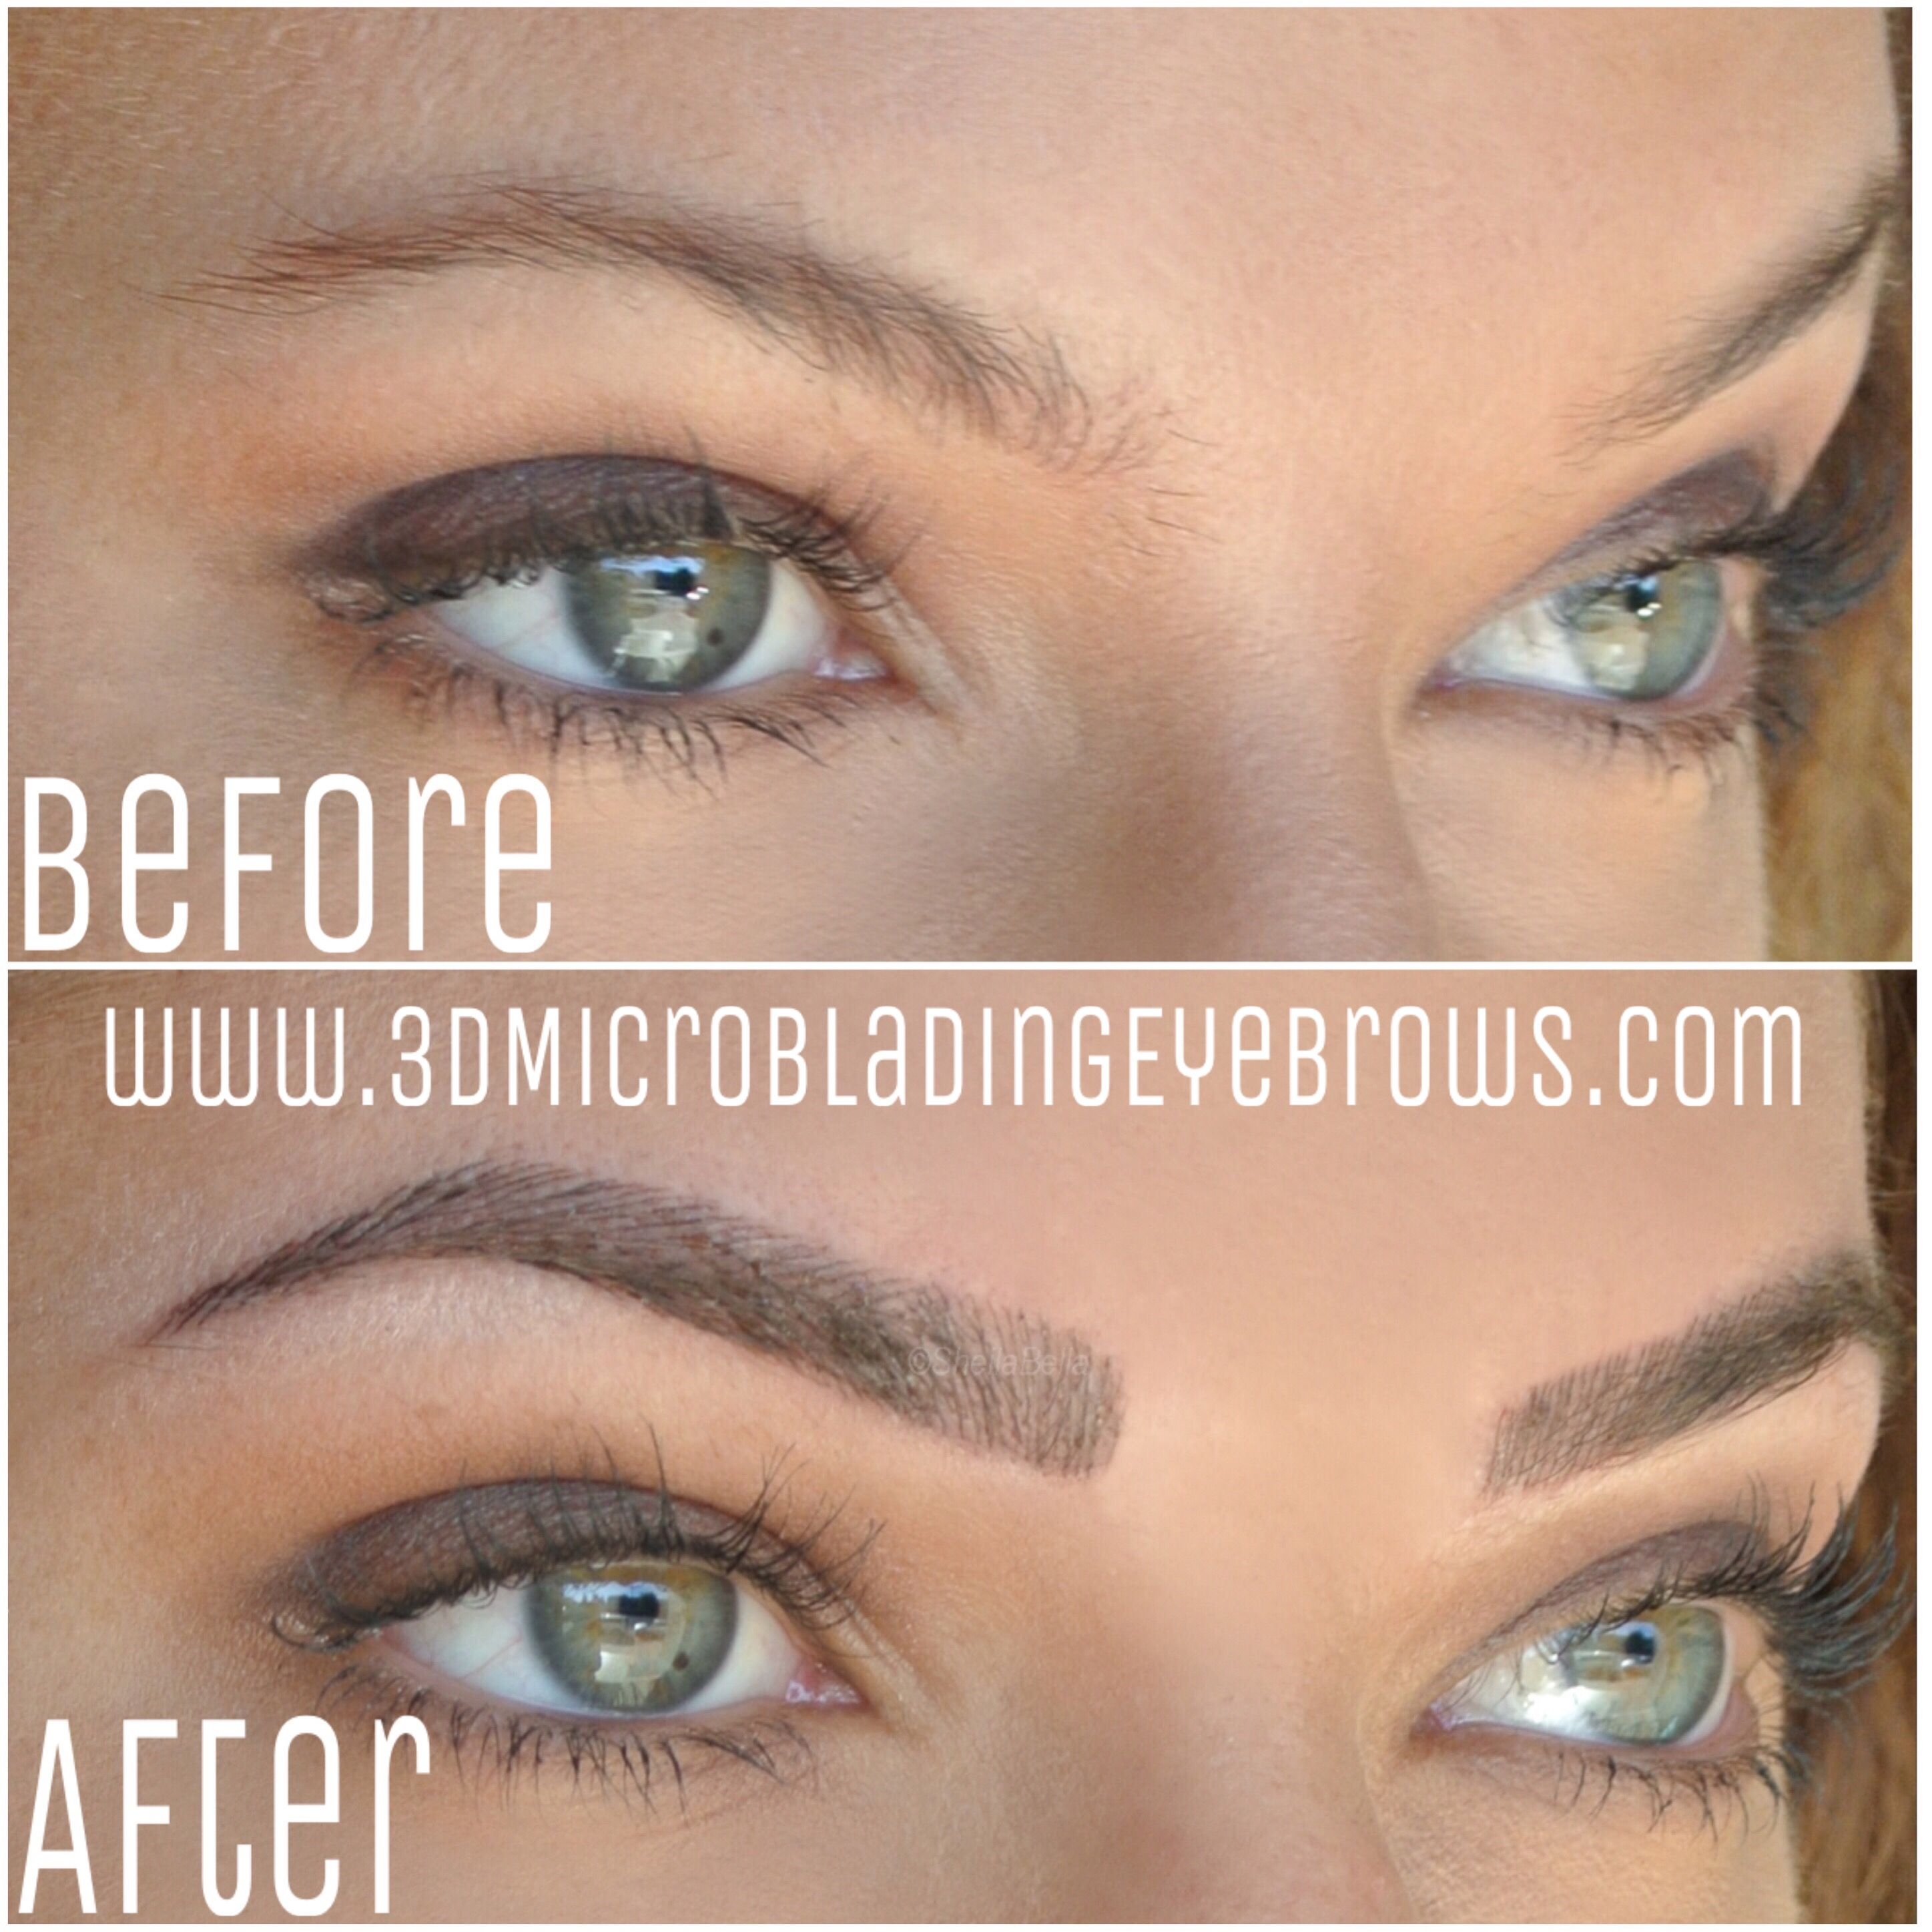 3D Microblading Eyebrows by wwww.3DMicrobladingEyebrows